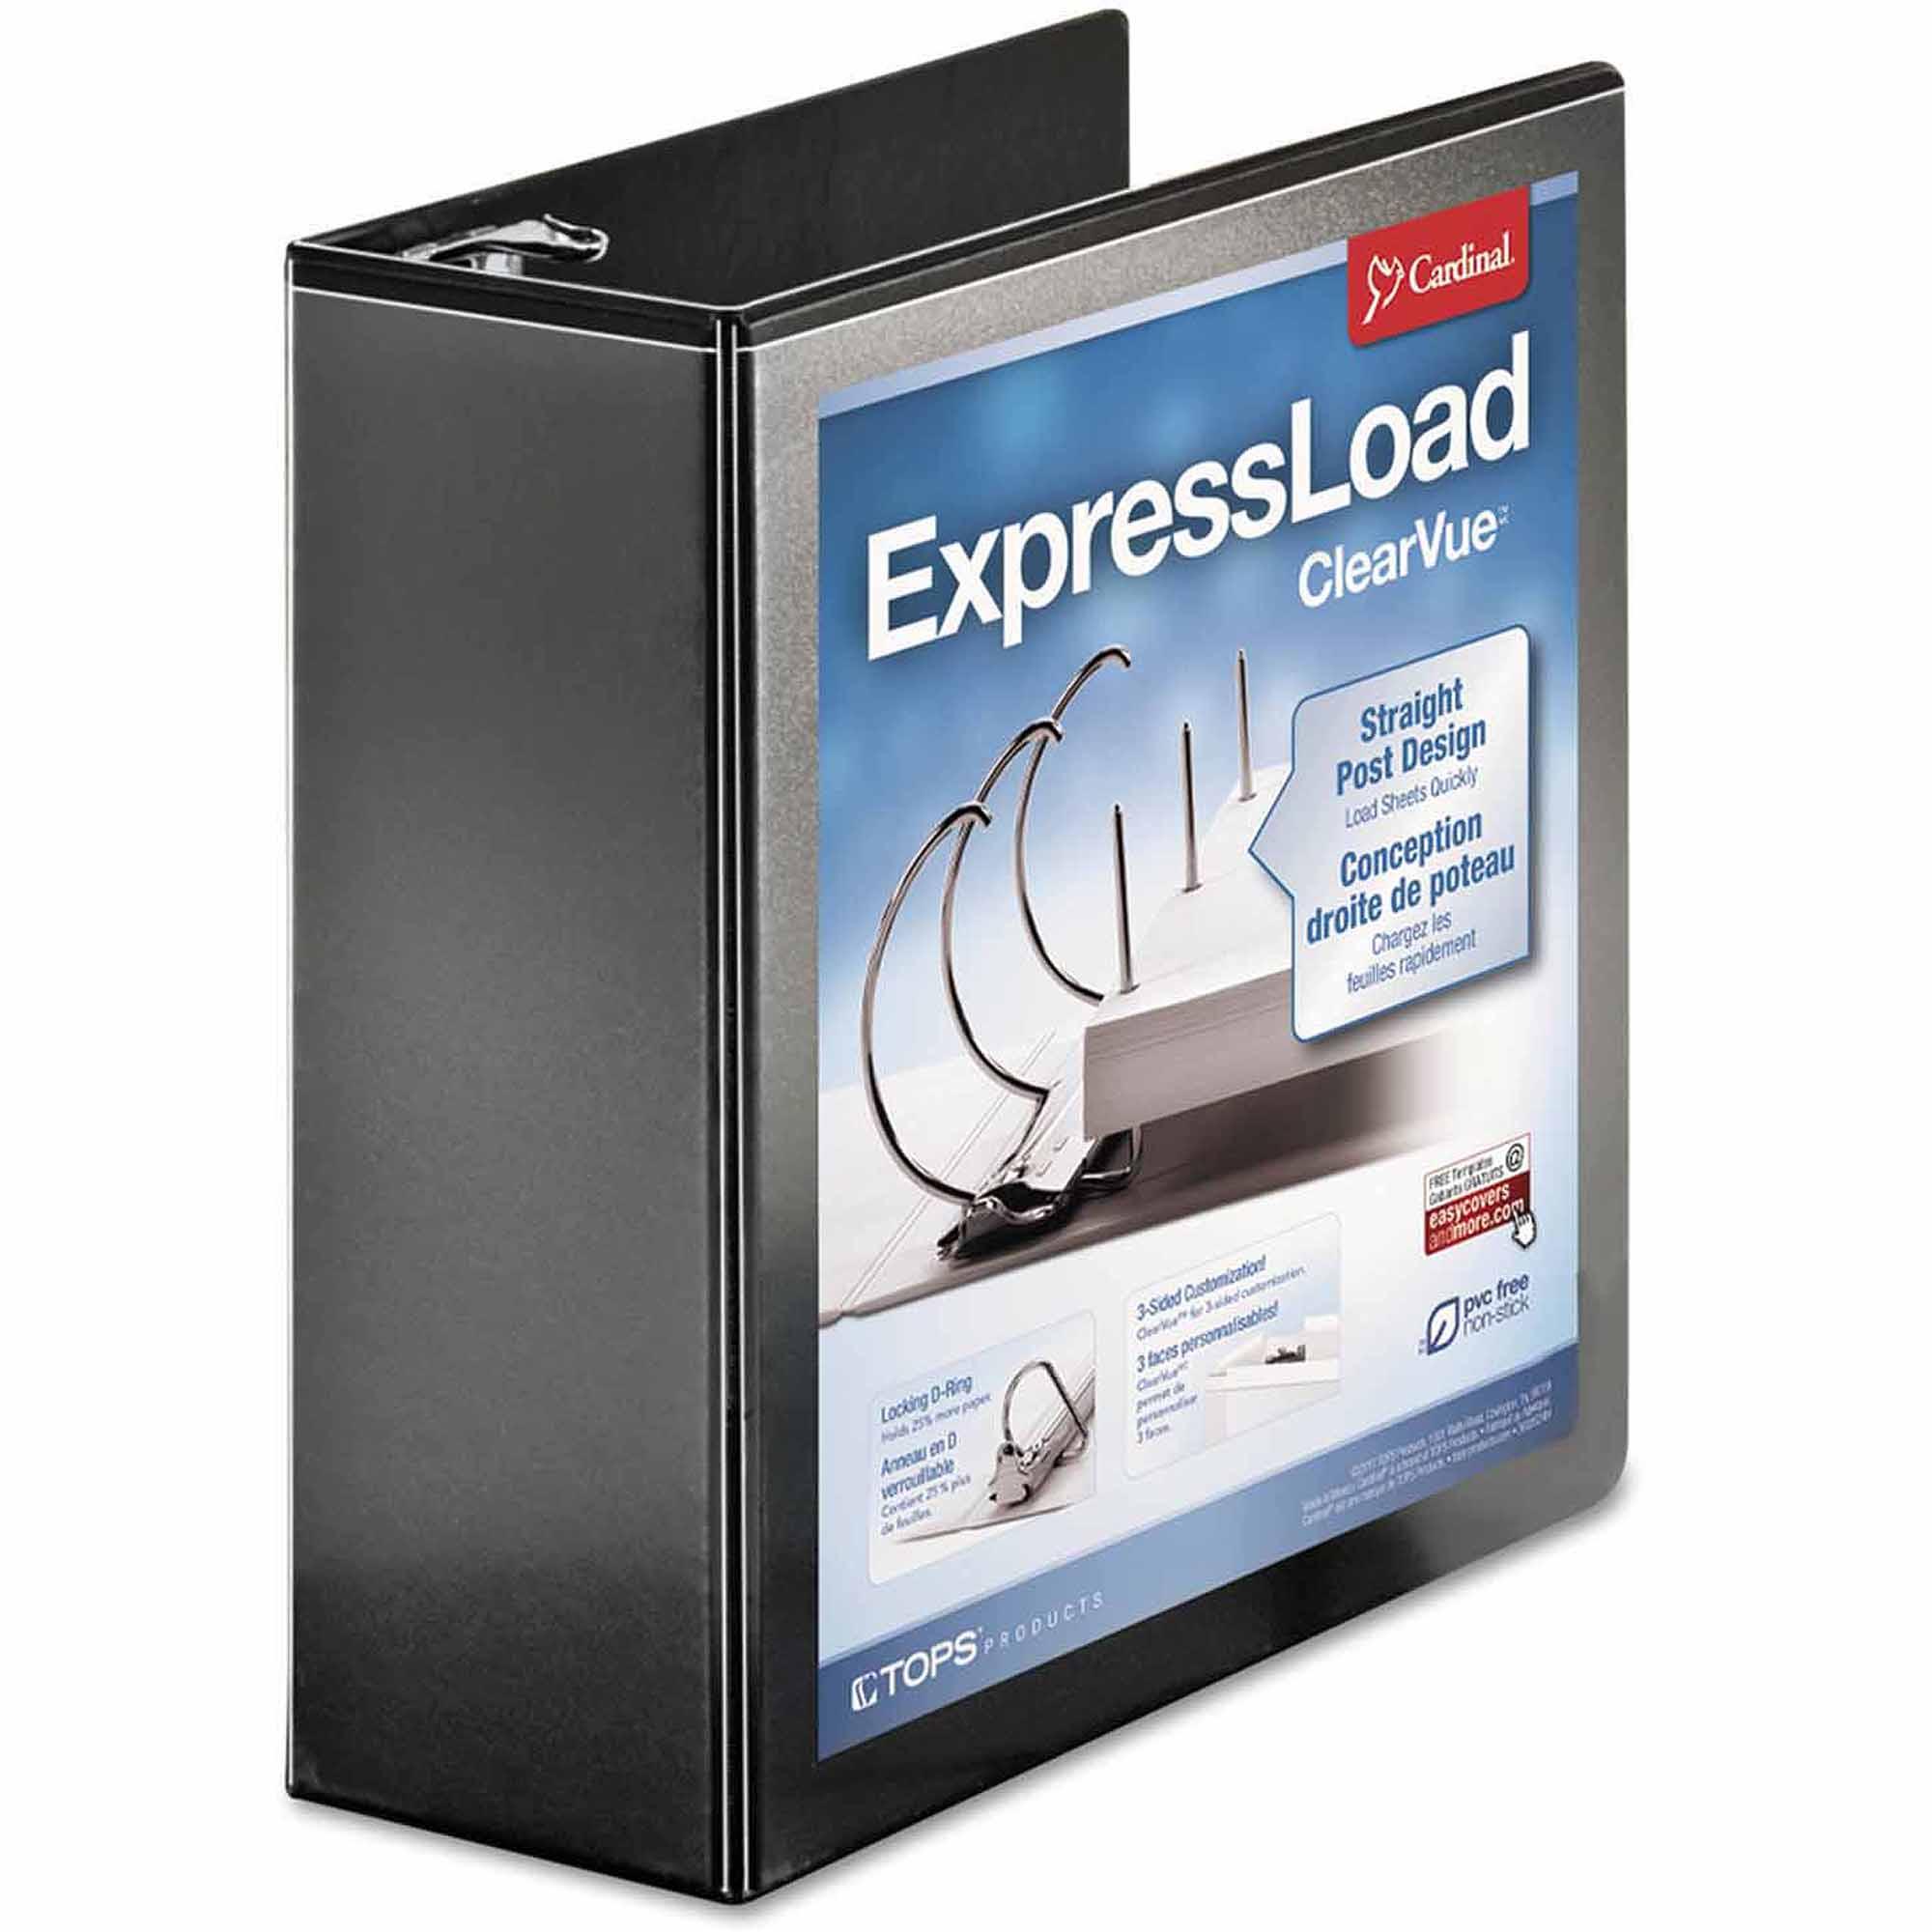 "Cardinal ExpressLoad ClearVue Locking D-Ring Binder, 4"" Capacity, Black"